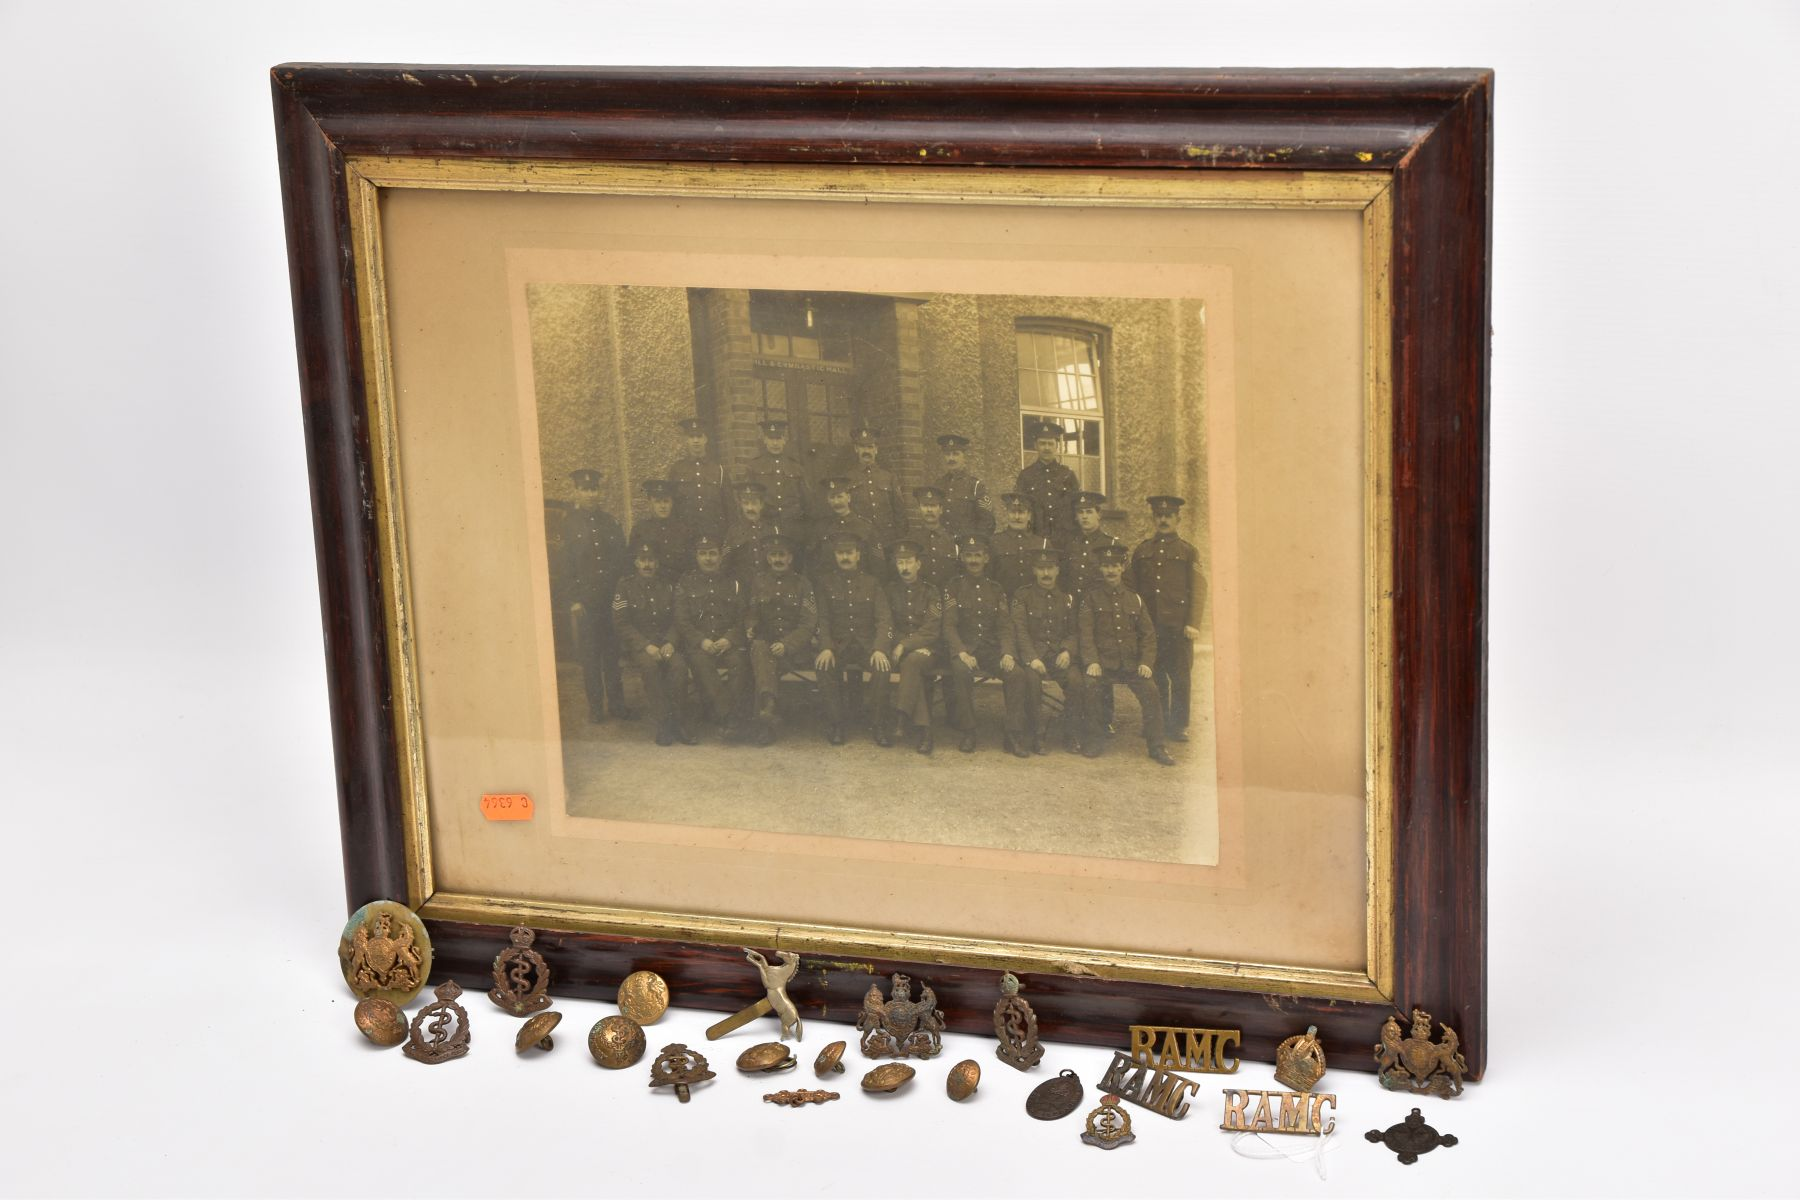 A LARGE GLAZED FRAME WITH A WWI PERIOD PHOTO OF A COMPANY OF SOLDIERS, in uniform, believed RAMC, - Image 8 of 8